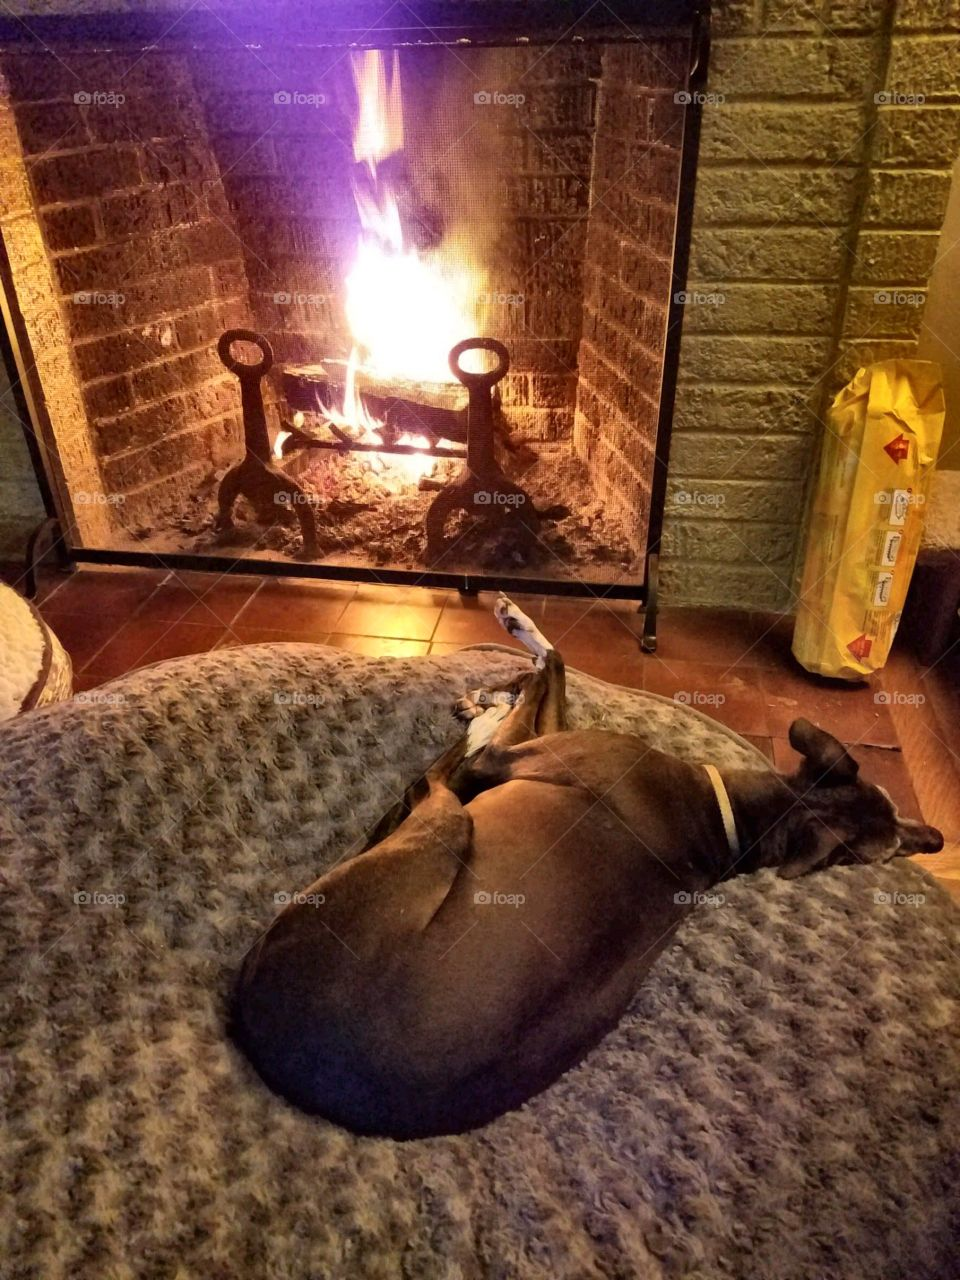 Dog laying on bed in front of burning fireplace.